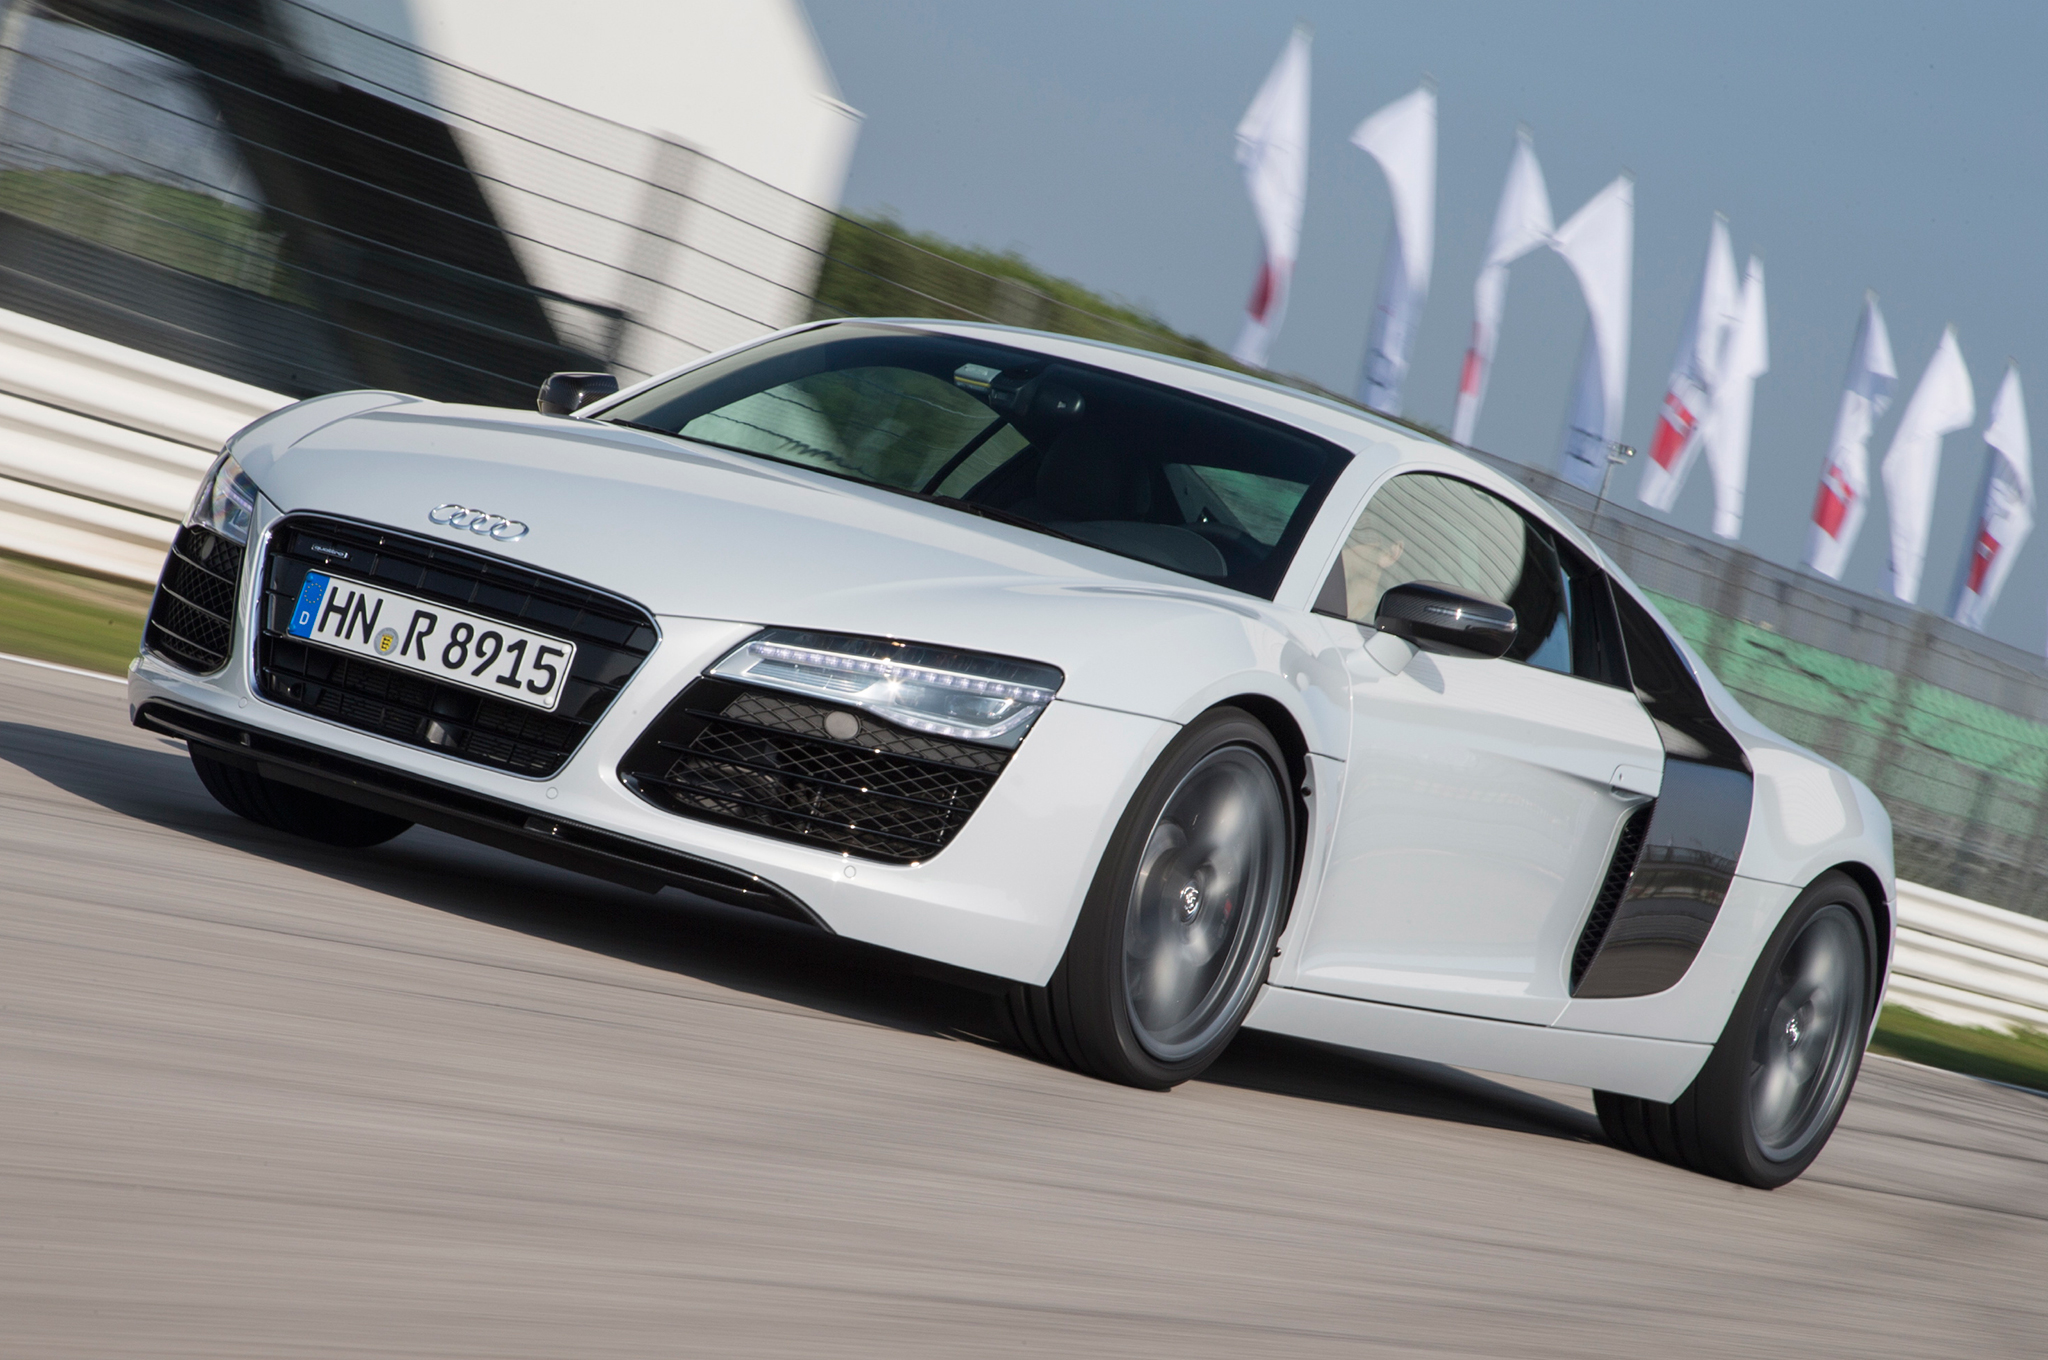 Audi Says Next-Gen R8 will be up to 130 Pounds Lighter - 2013 L.A.